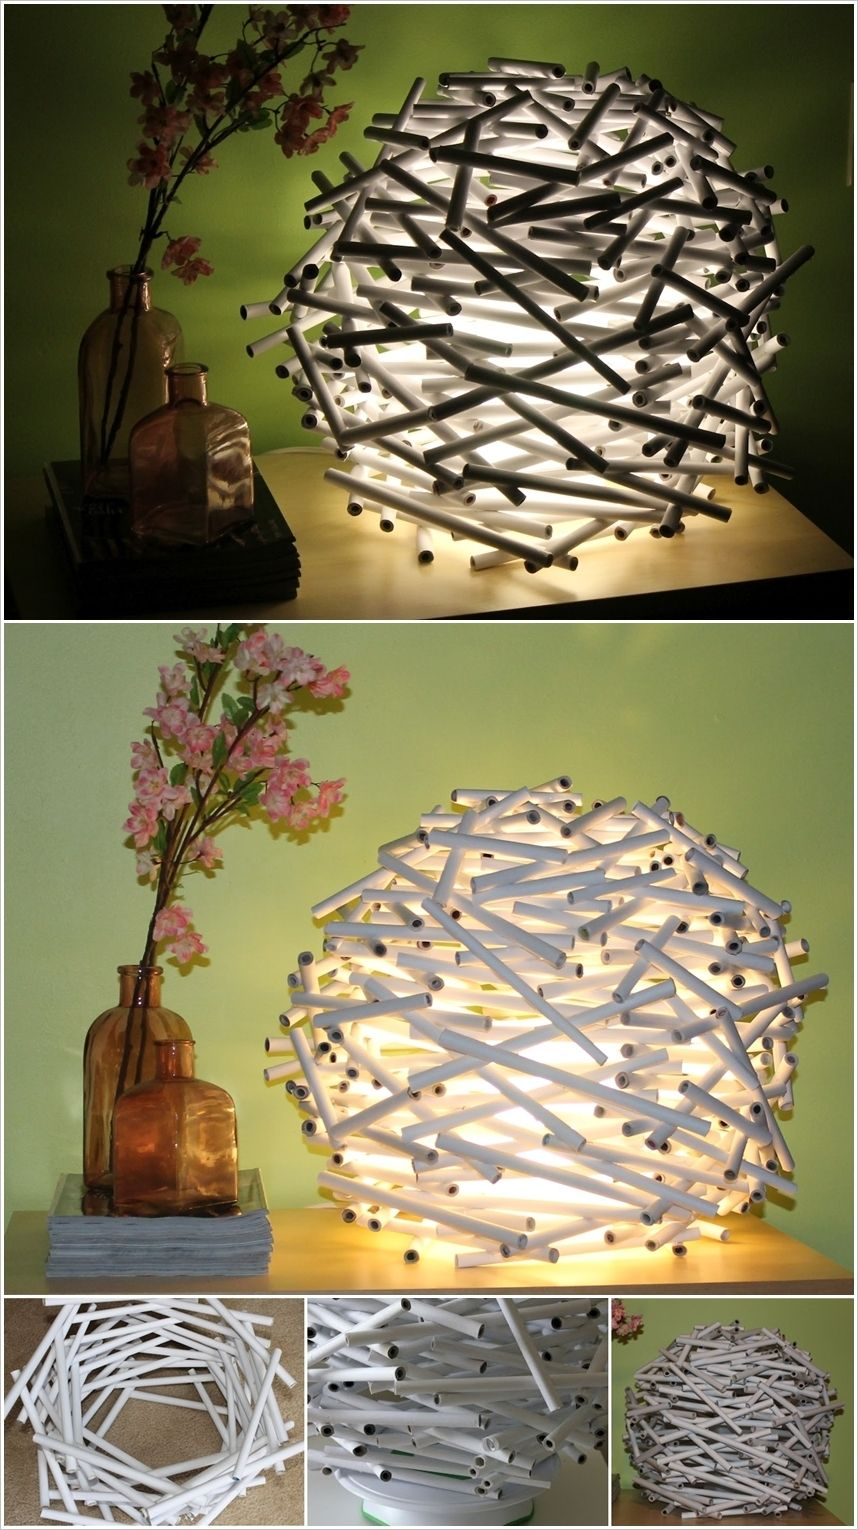 20 Amazing Diy Paper Lanterns And Lamps Architecture Design Paper Lanterns Diy Diy Lanterns Diy Lamp Shade